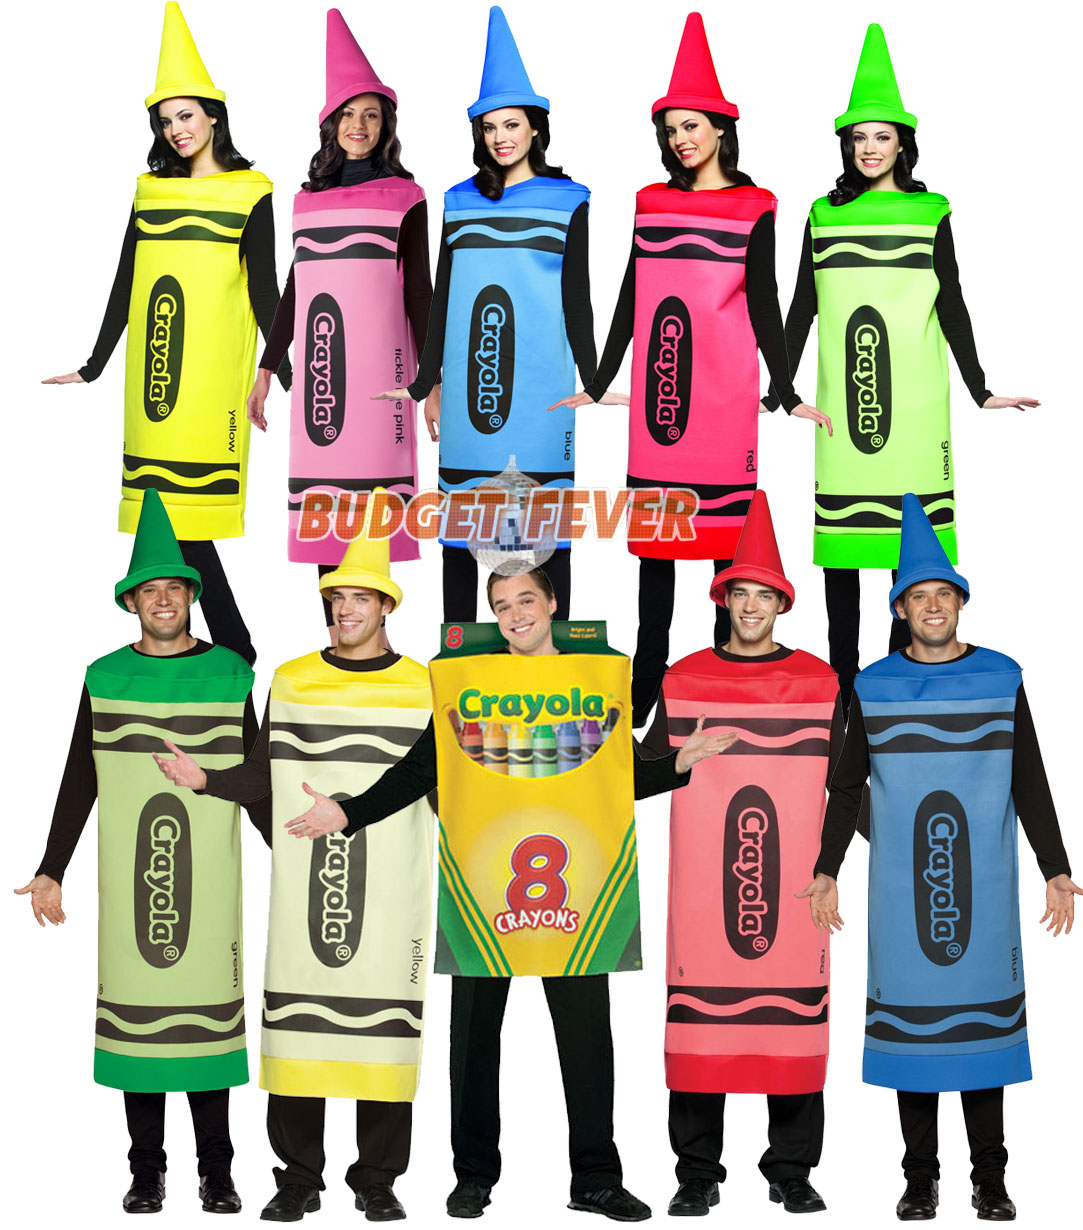 sentinel crayola crayon mens ladies fancy dress fun book week adult halloween costume - Crayola Halloween 2